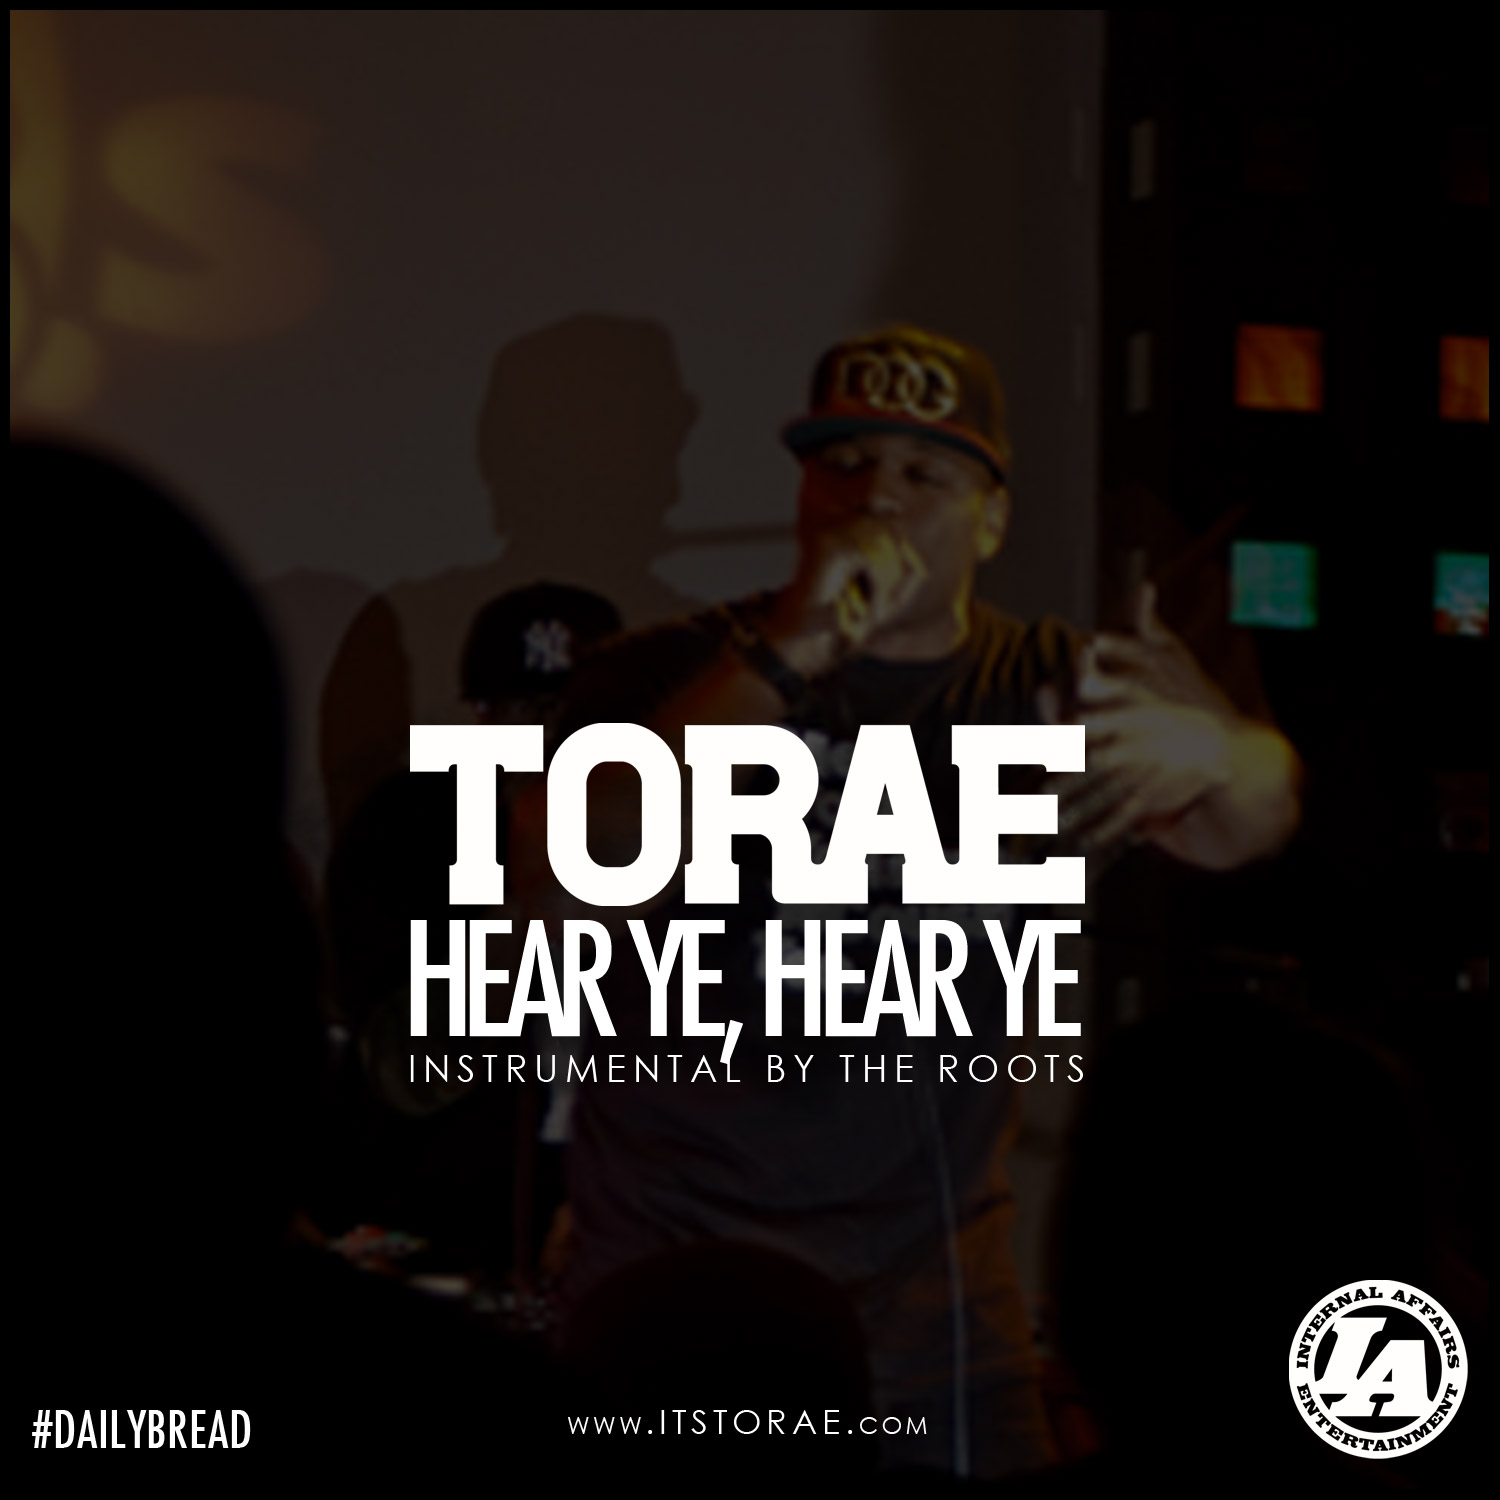 http://itstorae.files.wordpress.com/2012/10/torae_hearyehearye.jpg